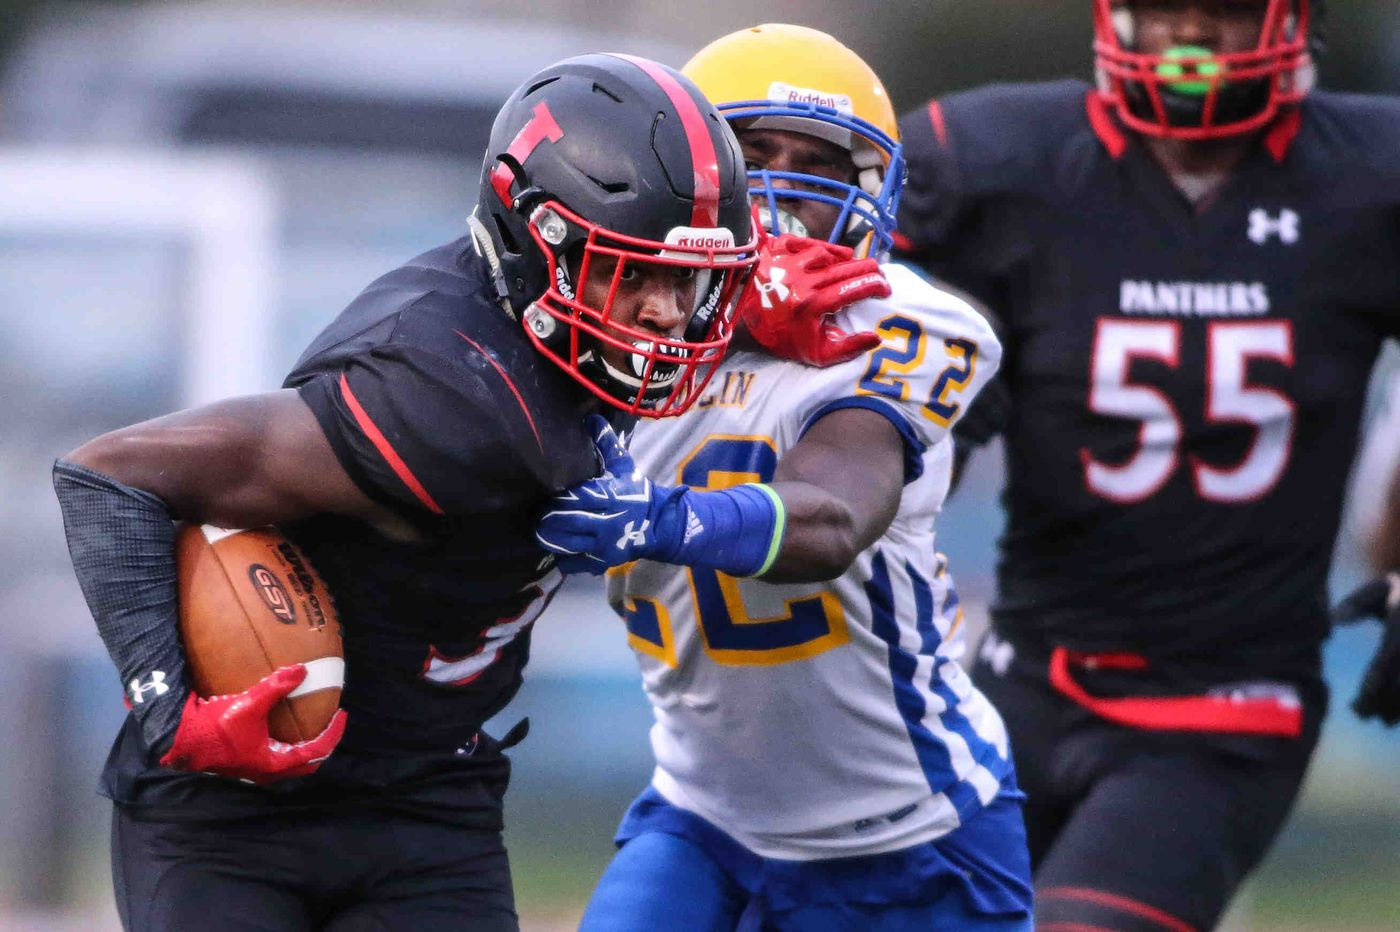 National signing day: Former Imhotep standout Isheem Young commits to Iowa State